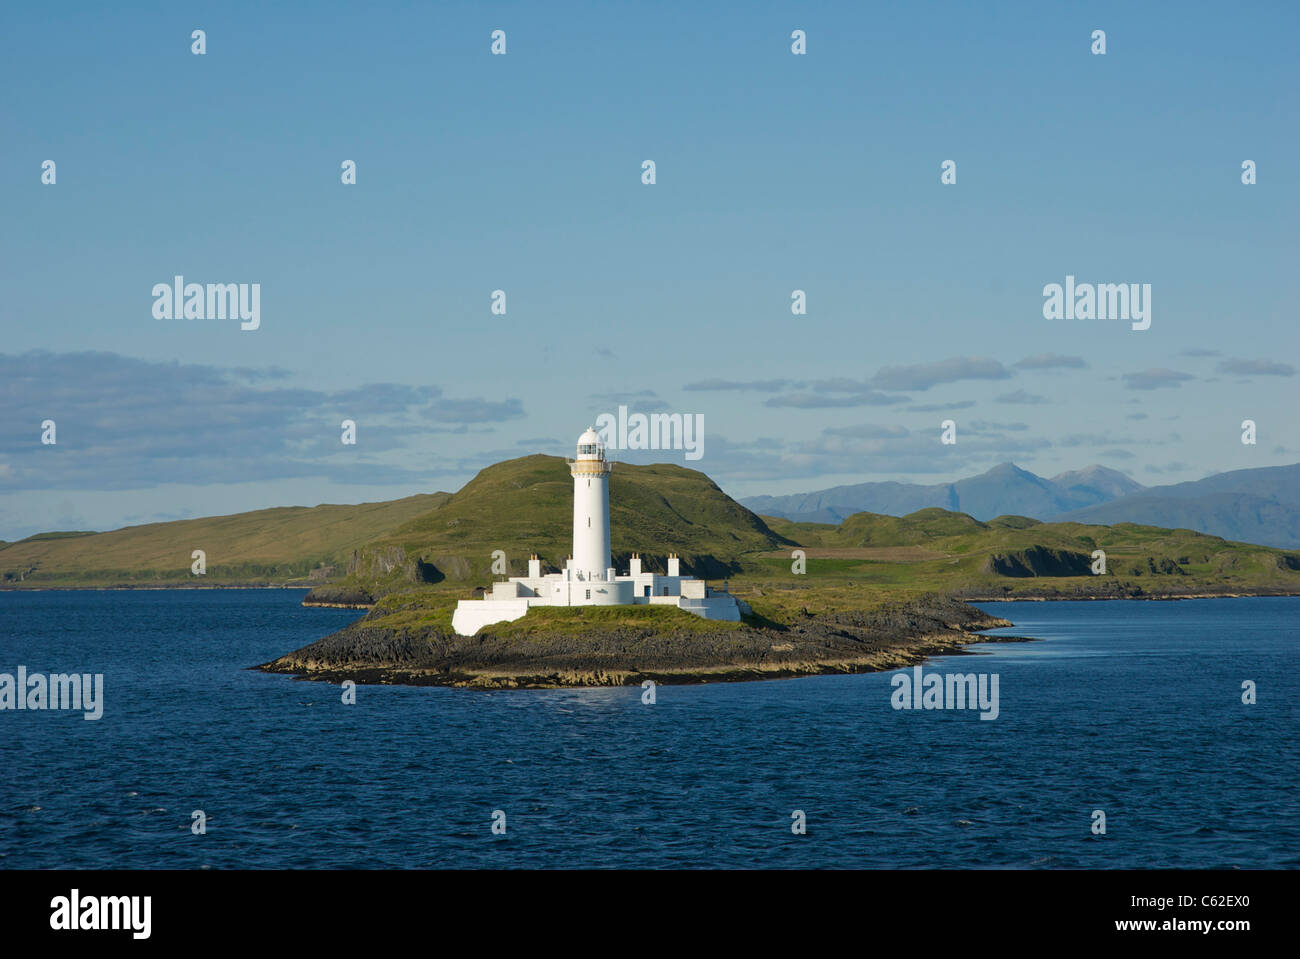 Lismore Lighthouse, on the uninhabited island of Eilean Musdile, between Oban and the island of Mull, Argyll, Scotland - Stock Image